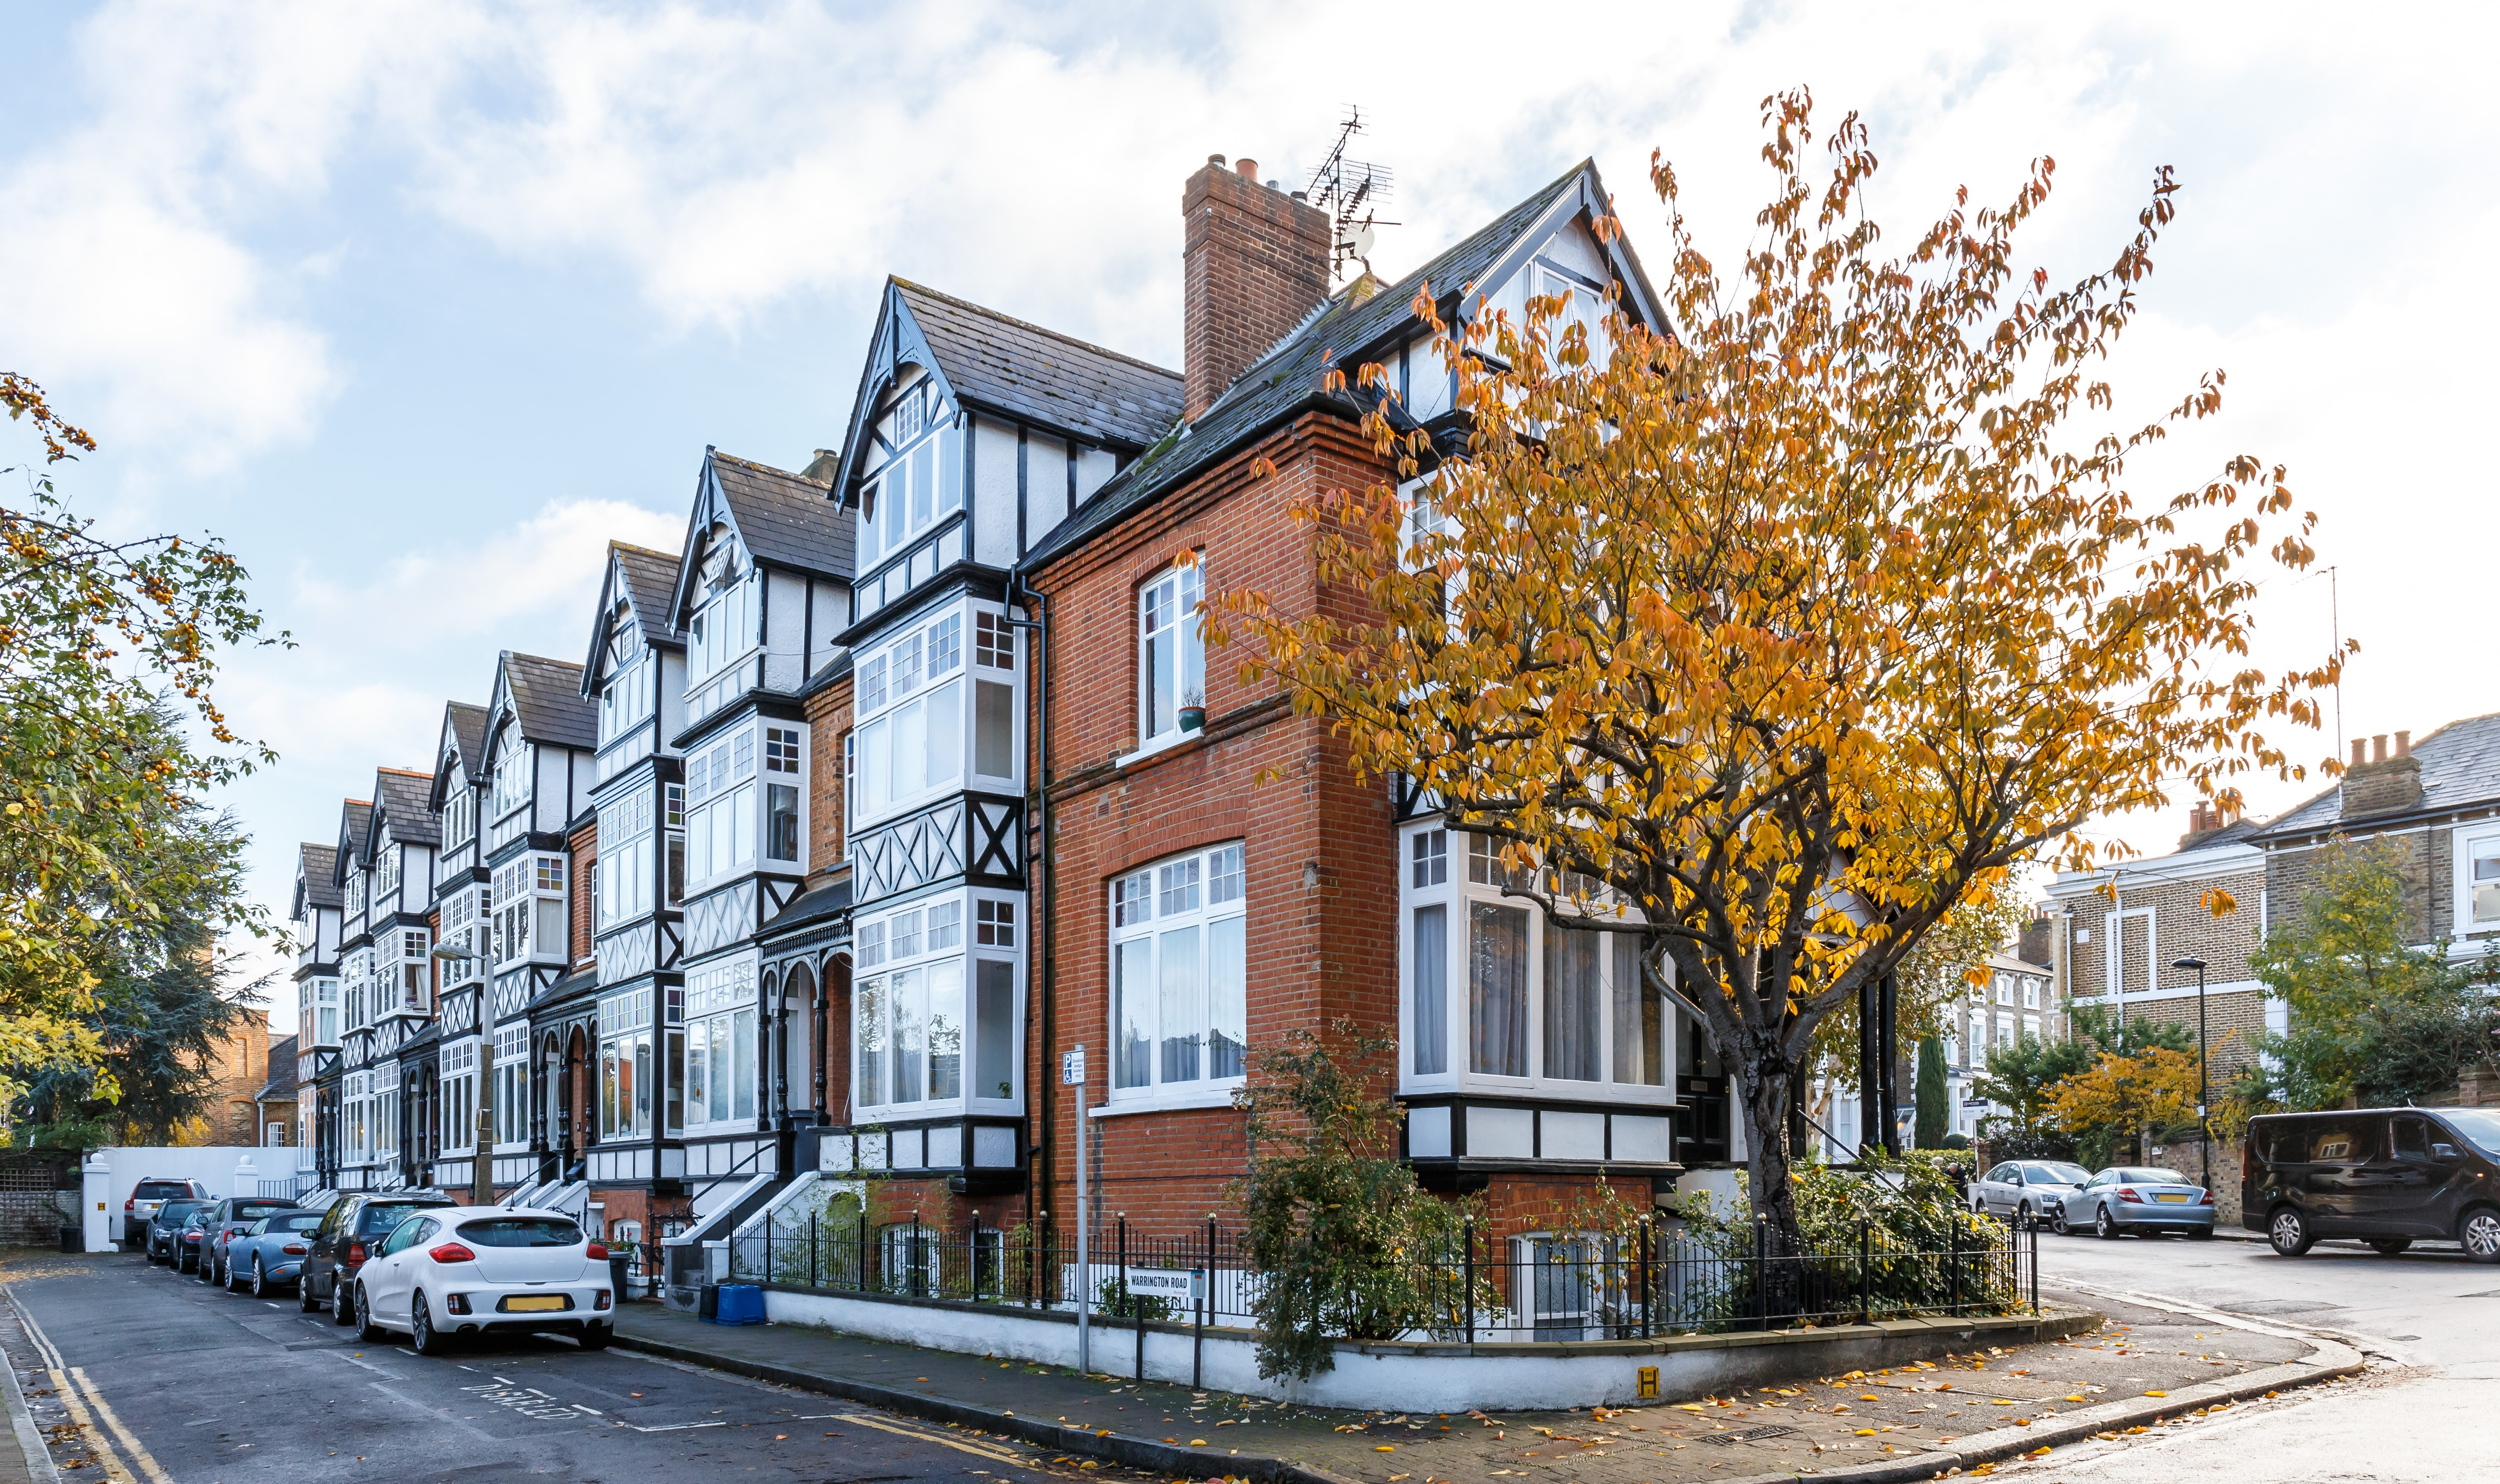 UK Residents with UK Residential Property Disposals – New Capital Gains Tax (CGT) rules from April 2020